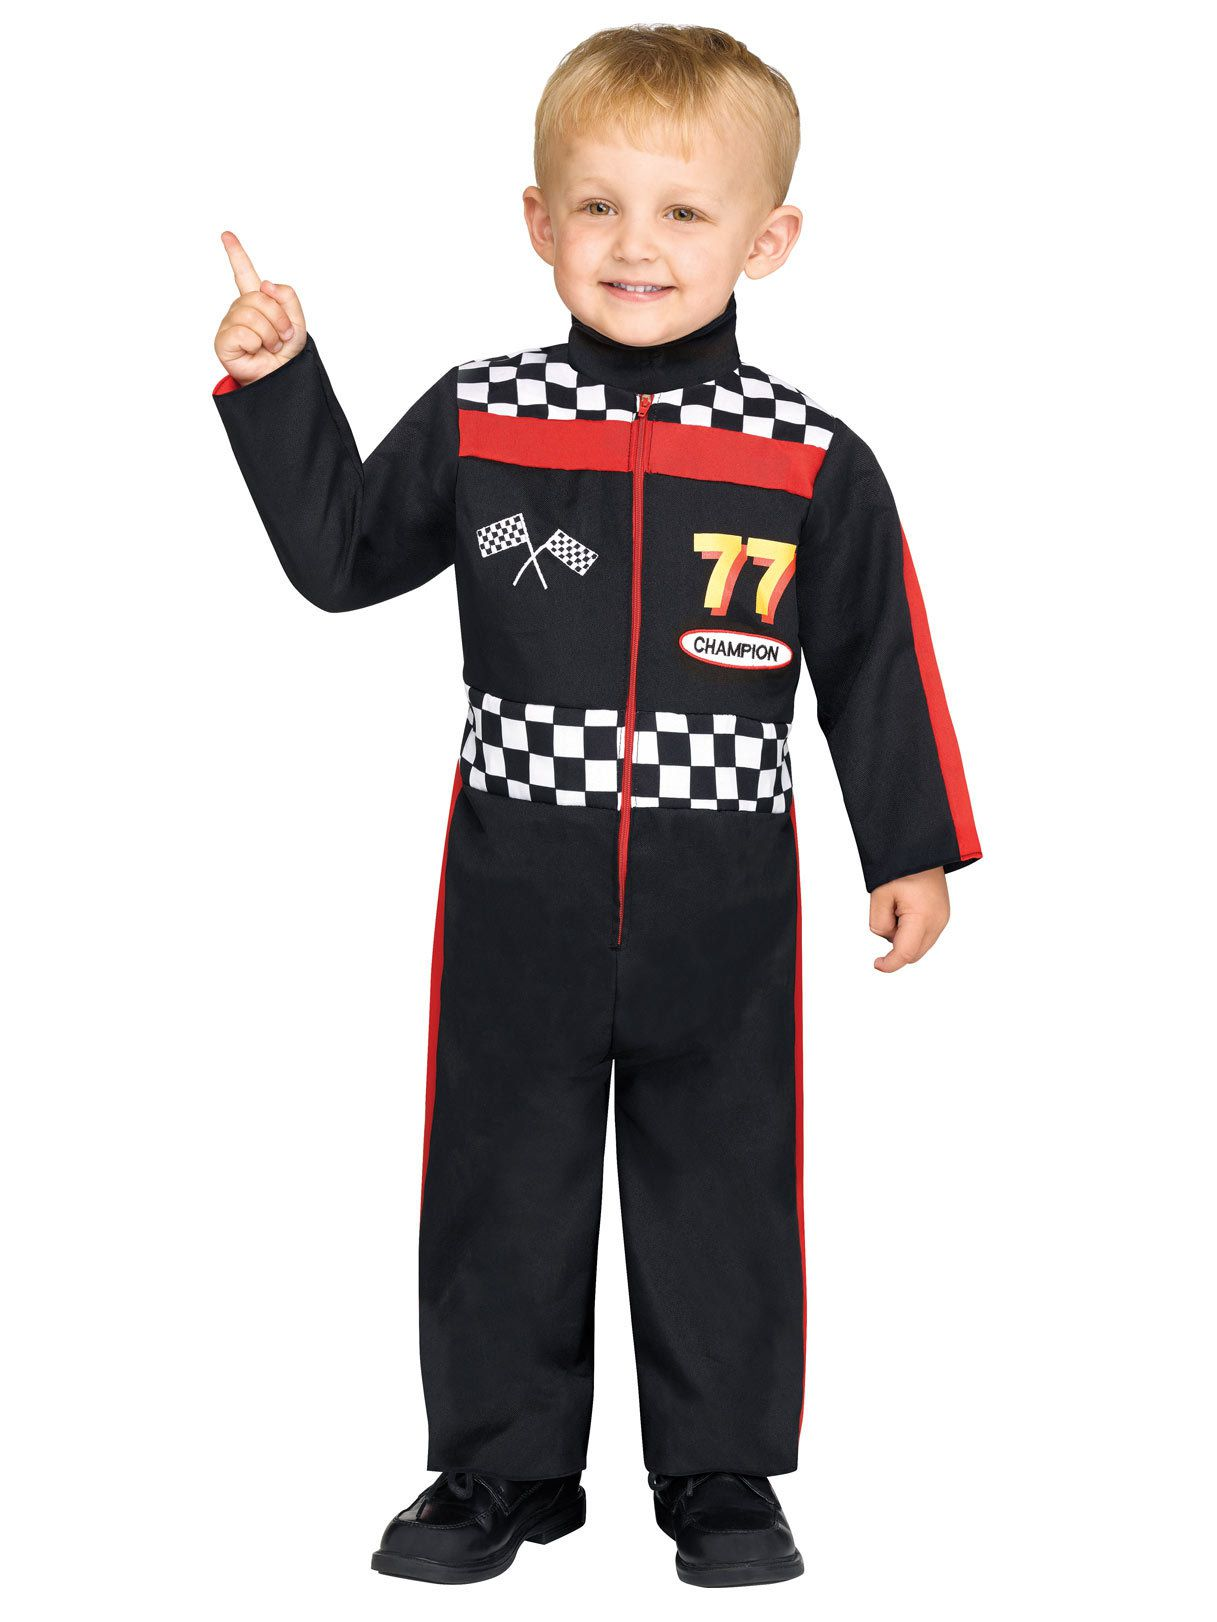 Toddler Race Car Driver Costume  sc 1 st  Wholesale Halloween Costumes & Toddler Race Car Driver Costume - Baby/Toddler Costumes for 2018 ...